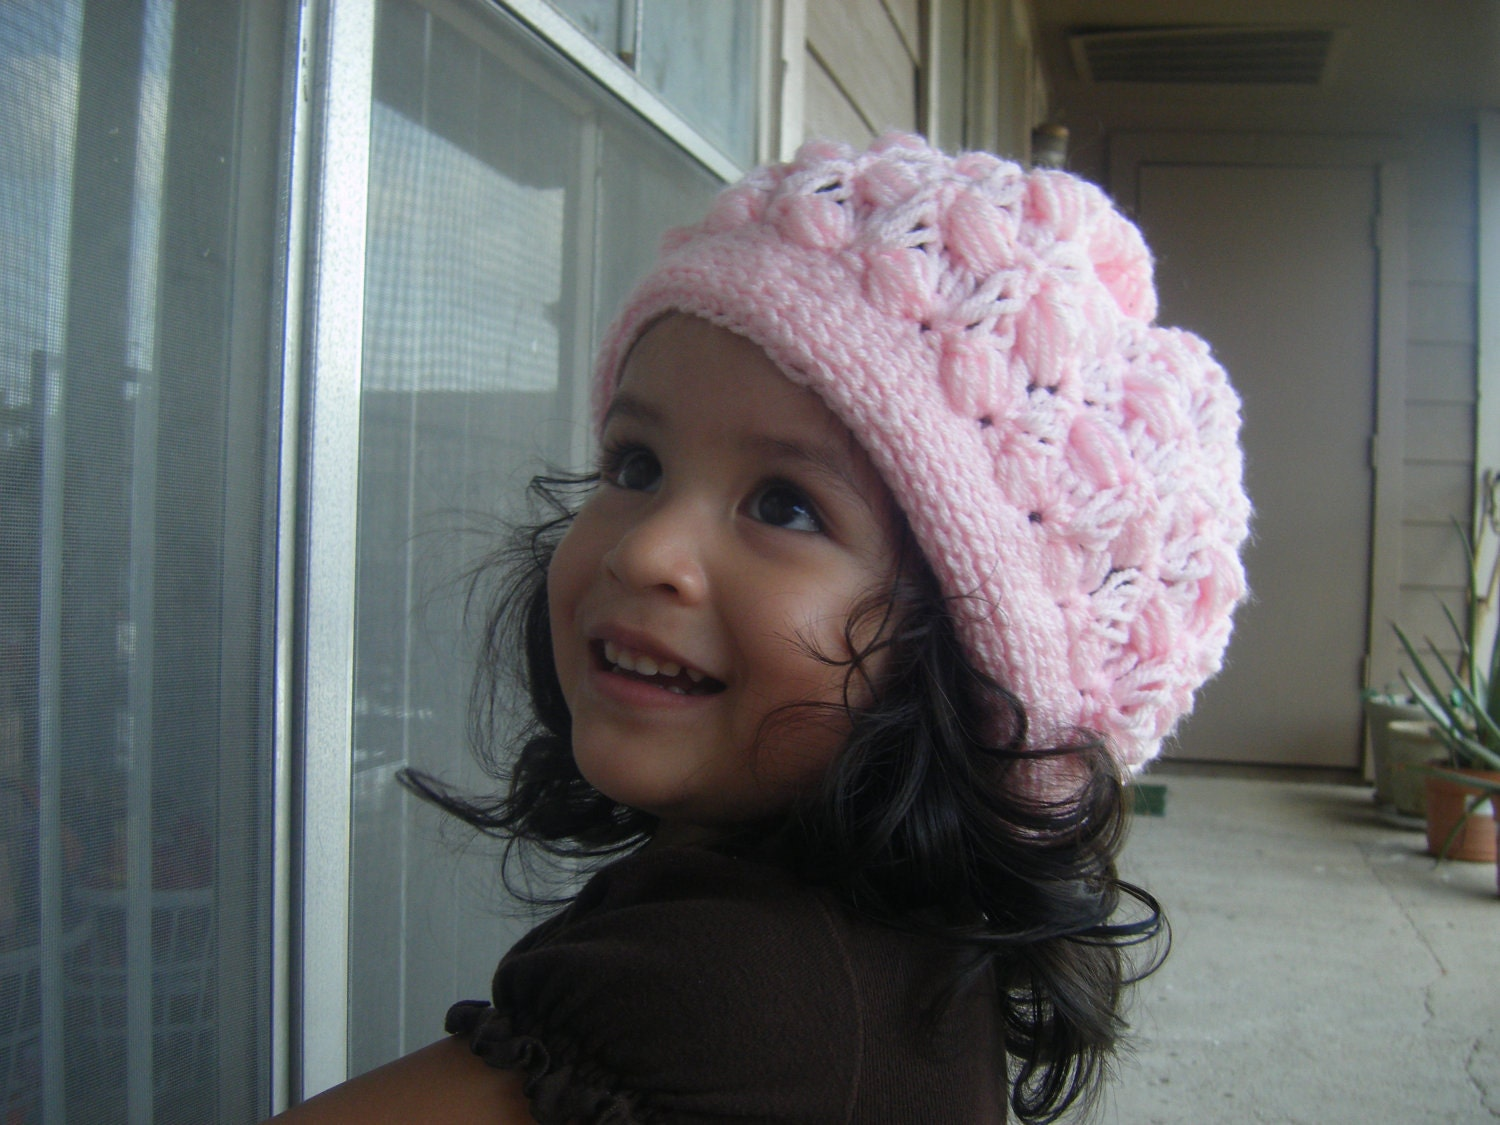 Crochet PATTERN-The Slouchy Beret (Baby, Toddler, Child, and Adult sizes) CAN SELL Finish Item